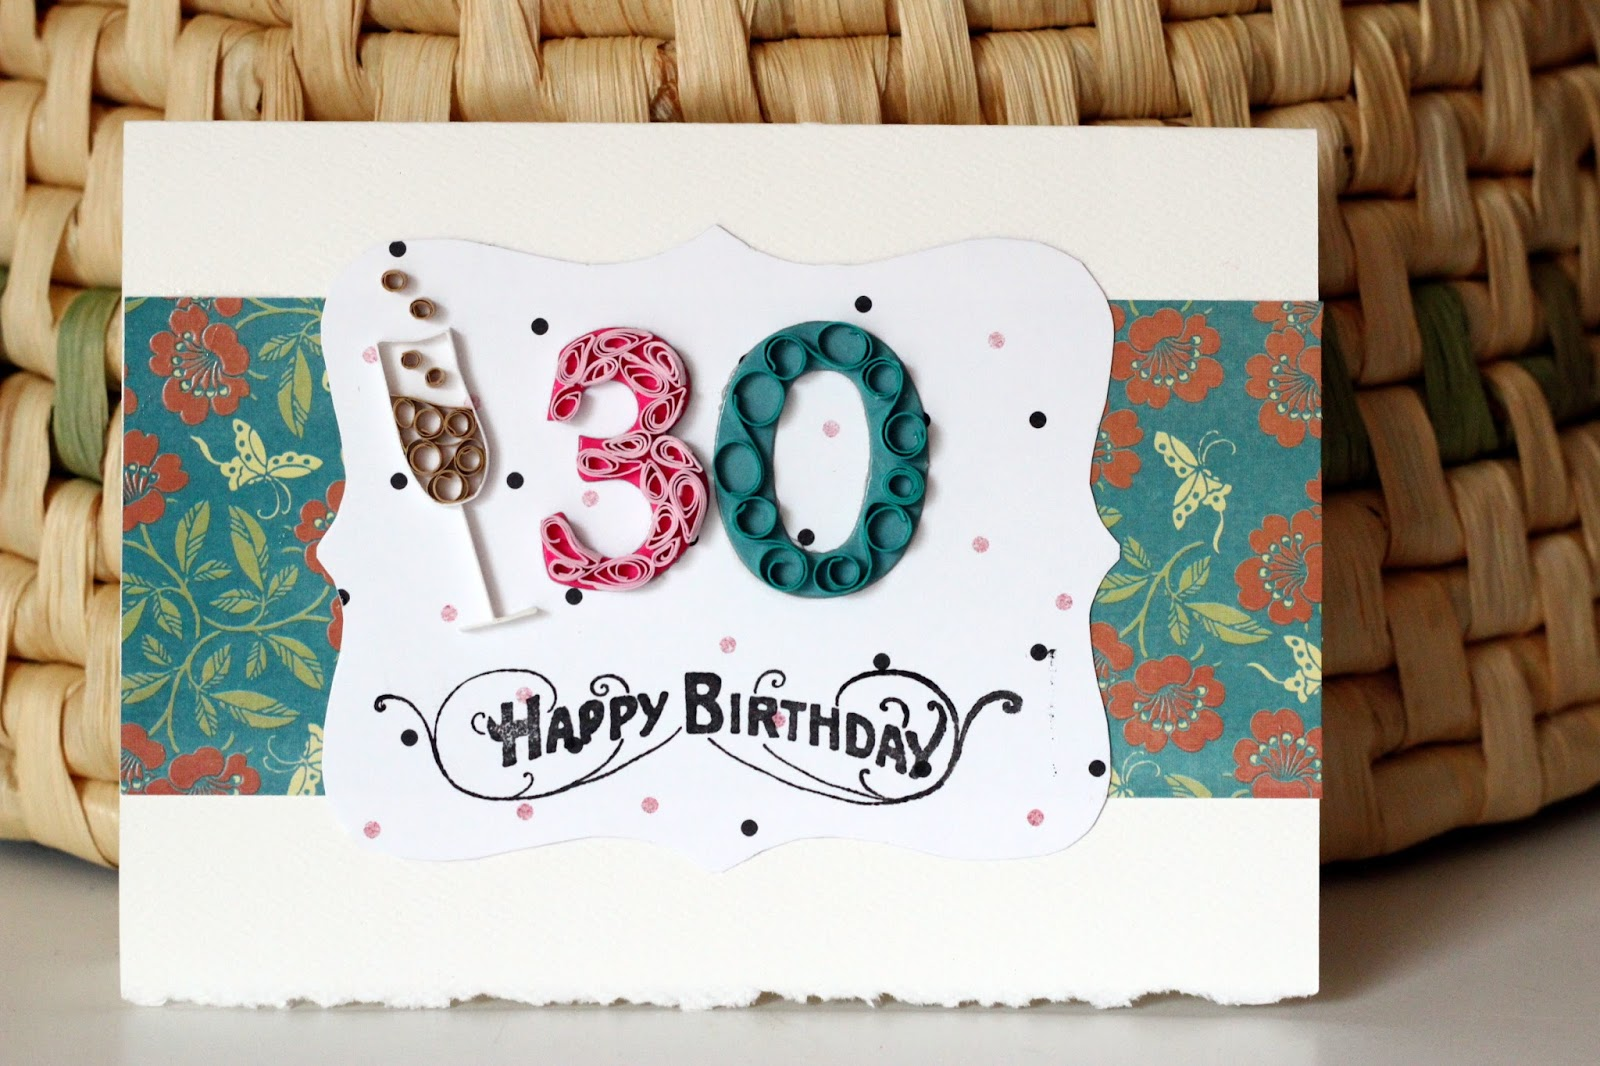 Doleenoted 30th birthday and fall themed quilled birthday cards requests for card 1 30th birthday champagne pink and teal the recipient of this card is an upholstery expert so i picked out this patterned paper to kristyandbryce Choice Image